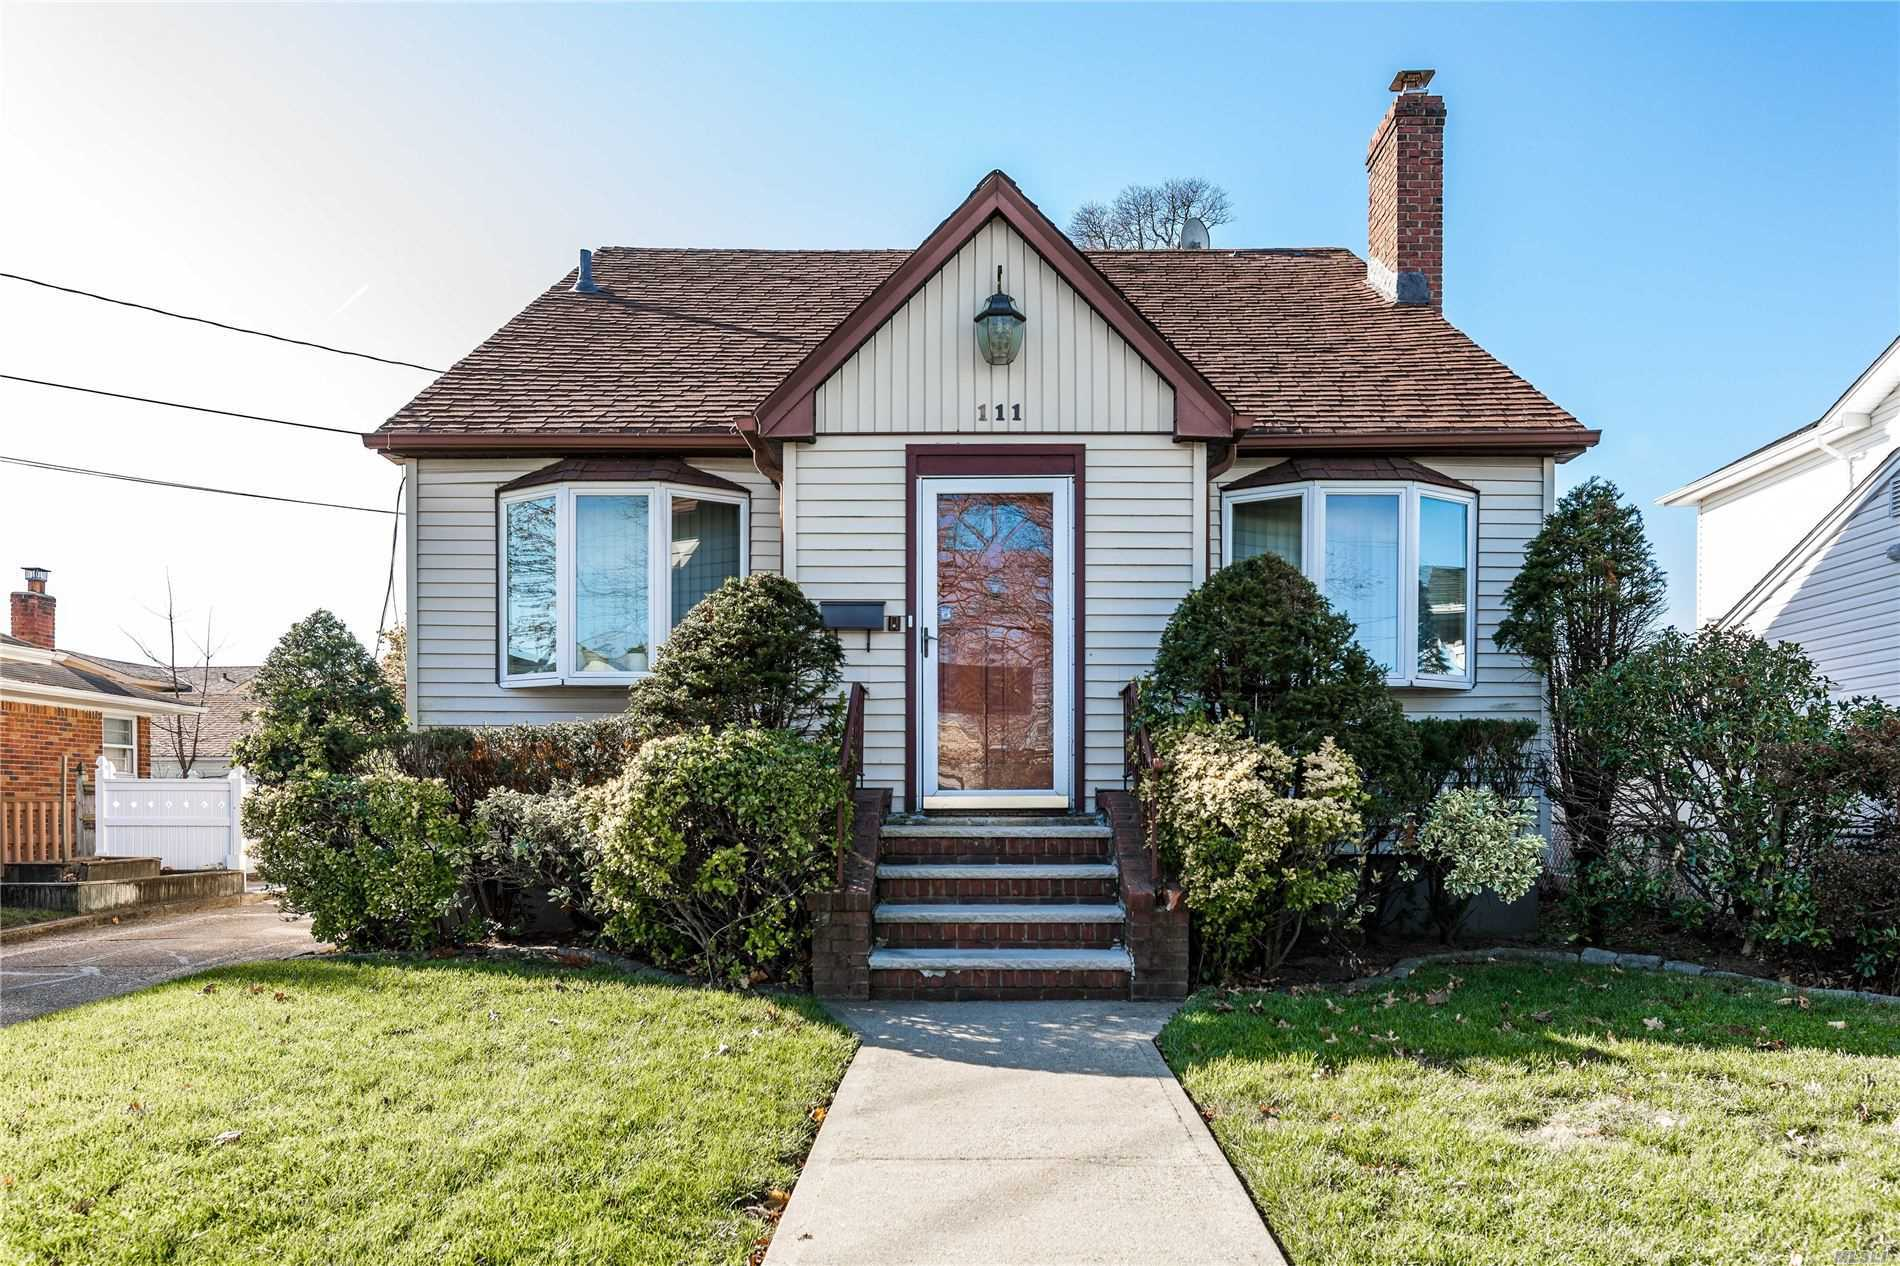 111 Pearsall Ave - Lynbrook, New York